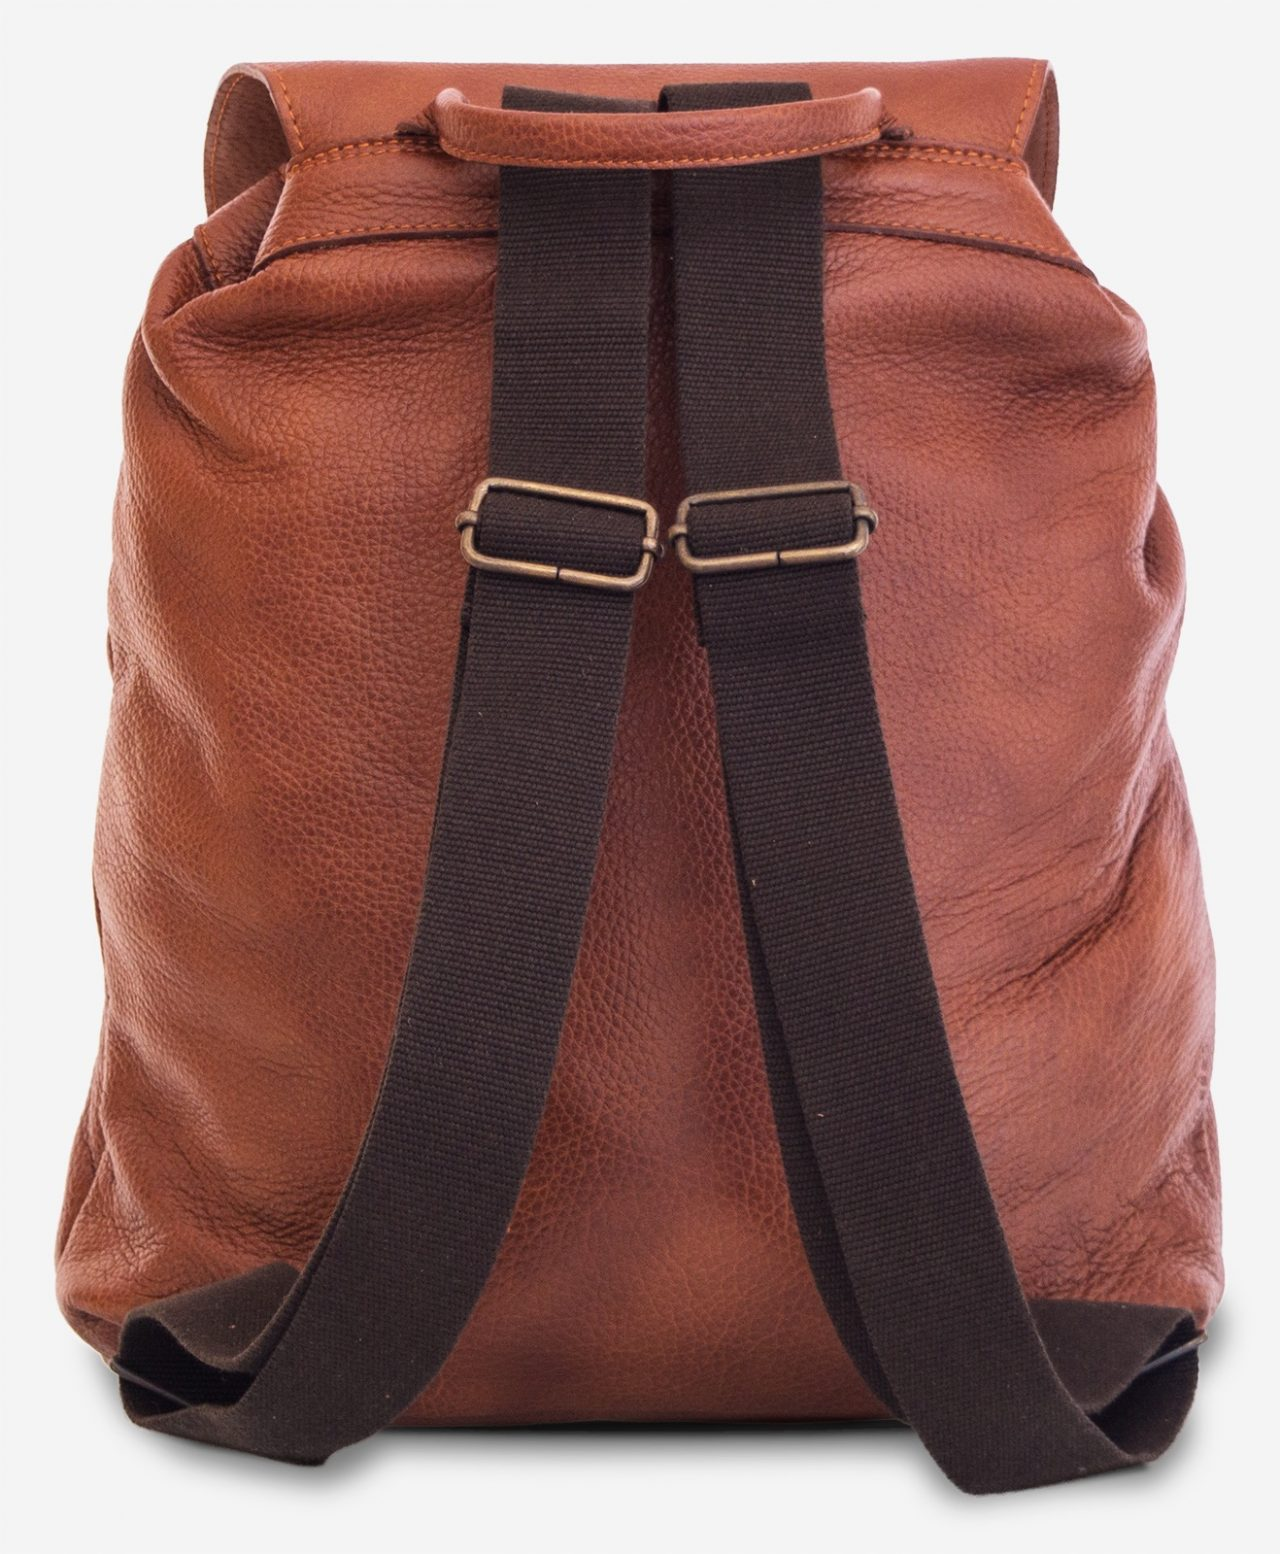 Back of the elegant brown soft leather backpack.